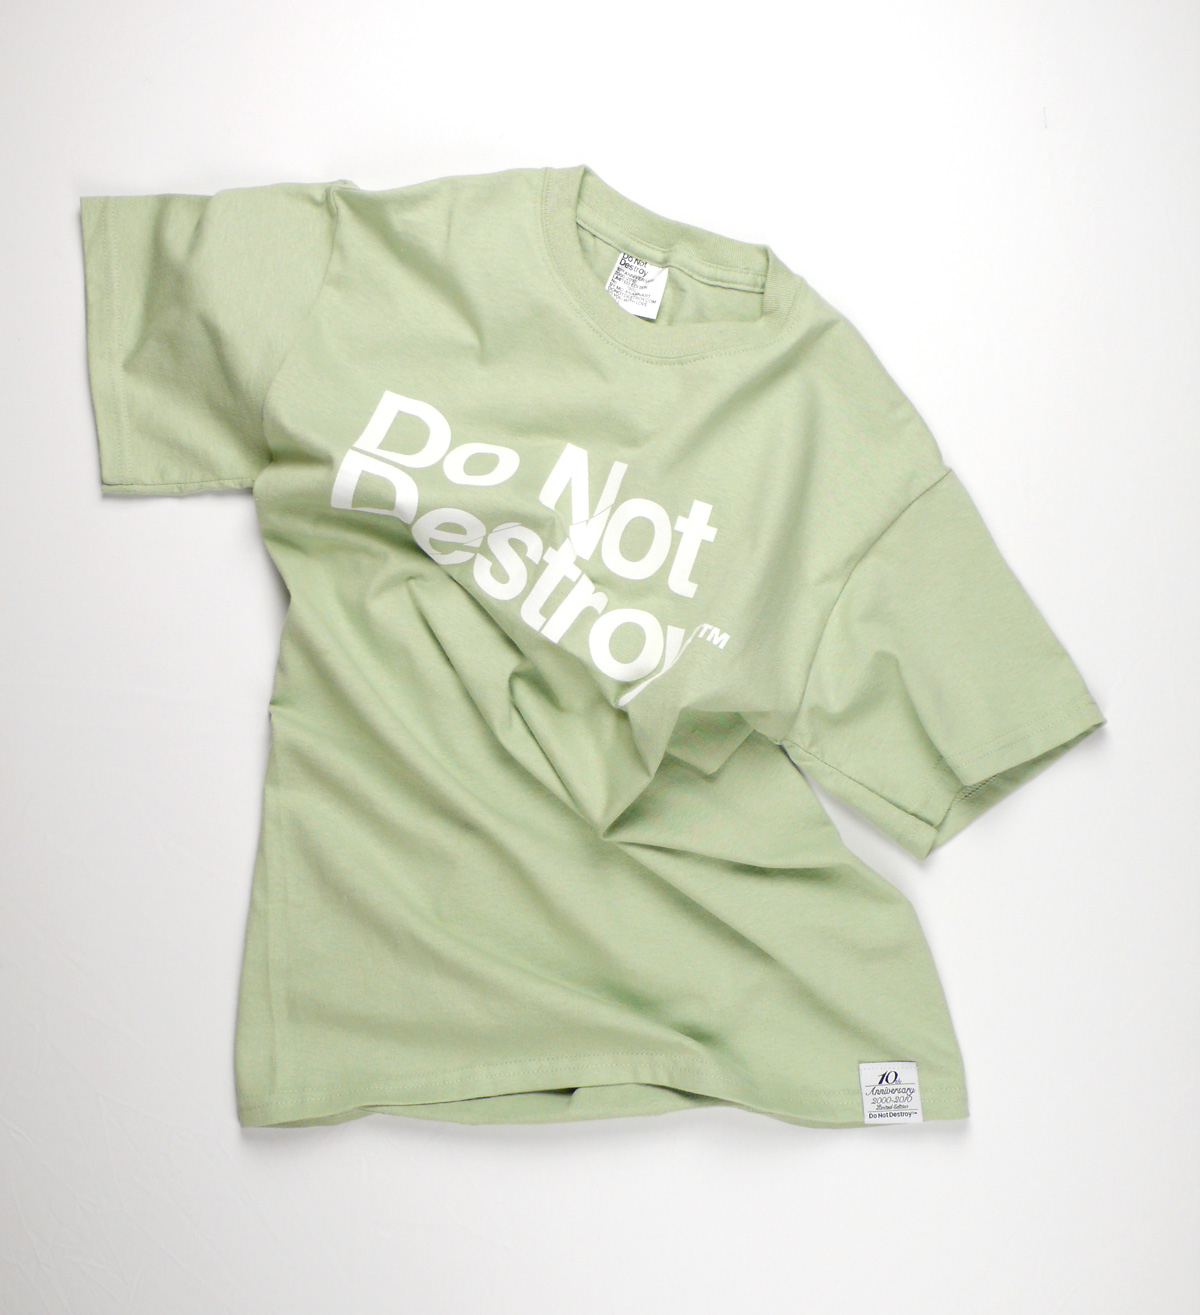 Do Not Destroy Serene Green t-shirt tee